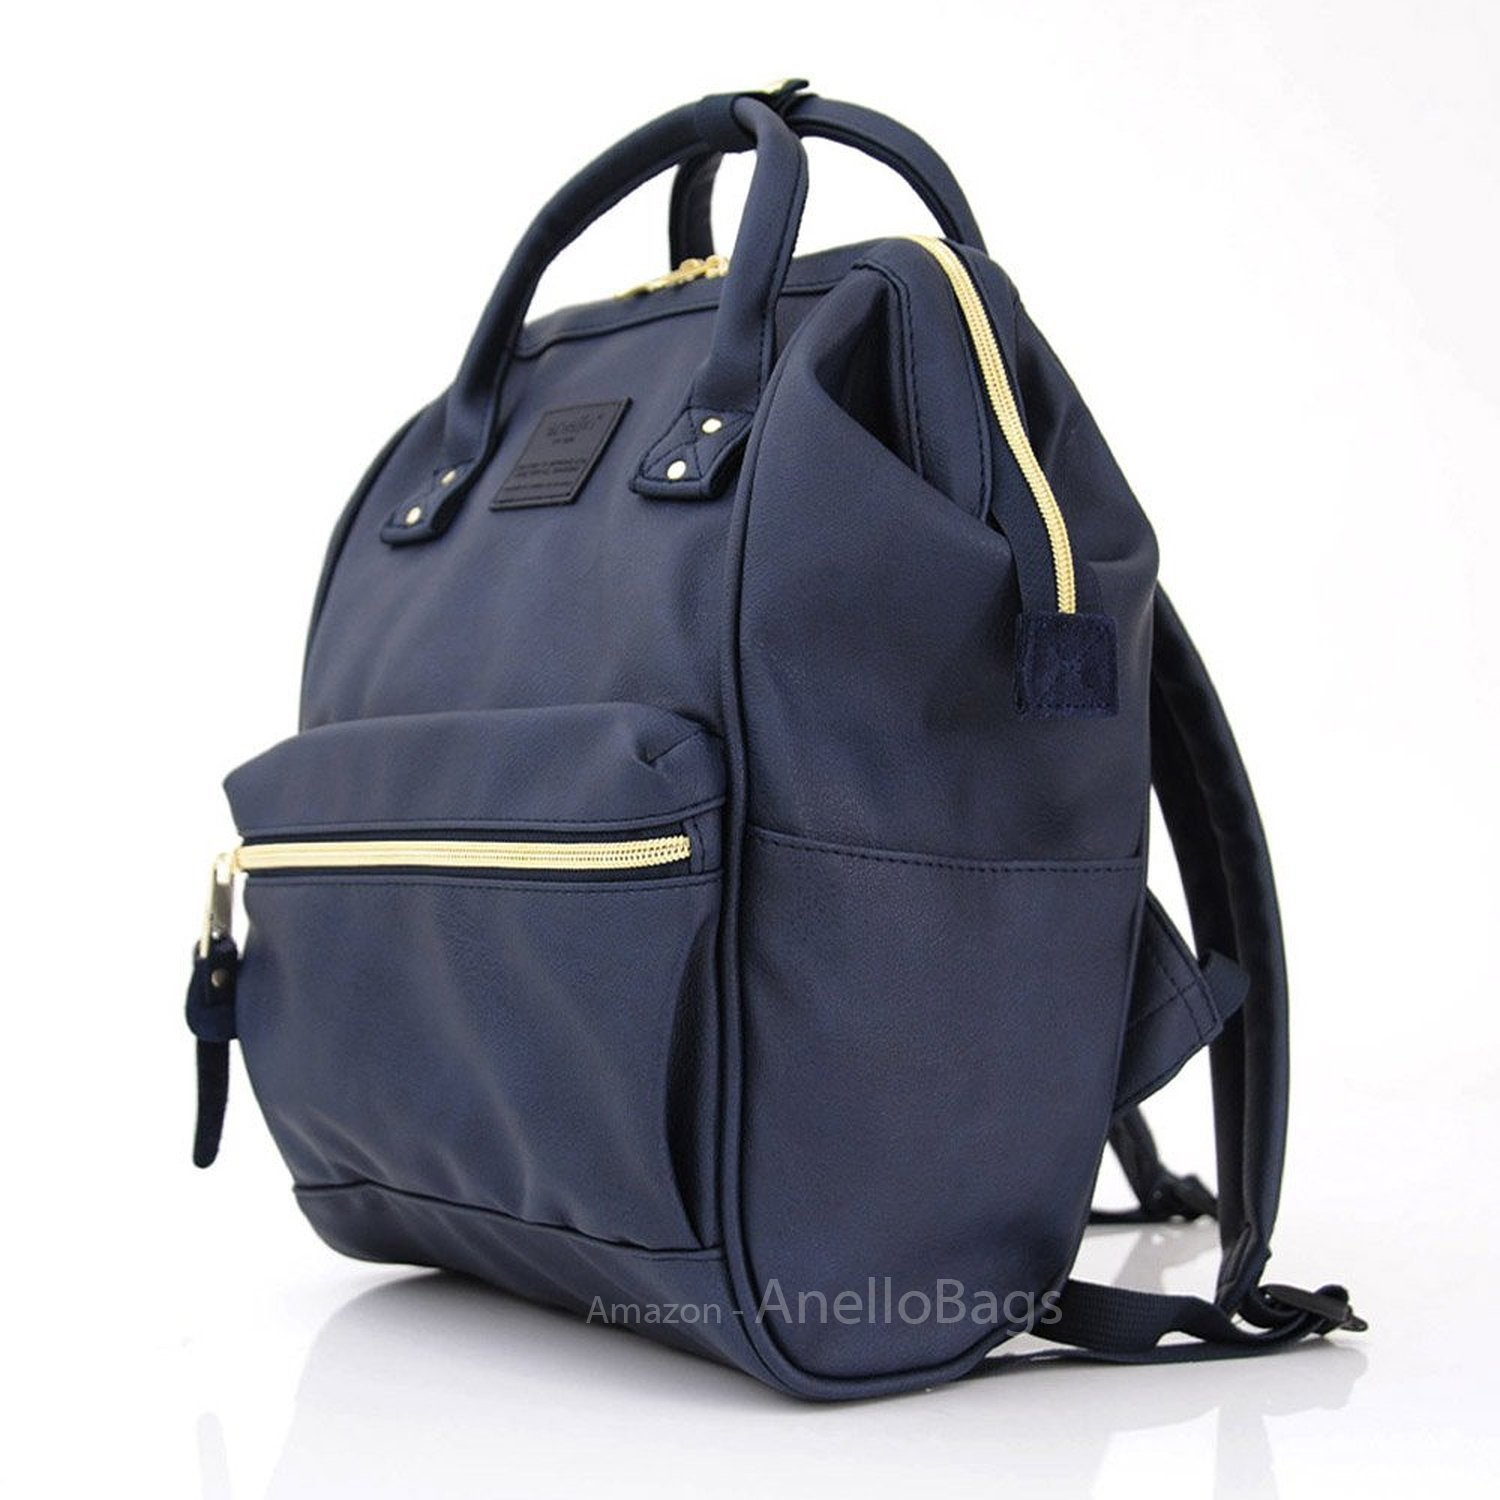 f8a4904538b5 Get Quotations · Japan Anello Backpack Unisex NAVY MINI SMALL PU LEATHER  Rucksack School Bag Campus